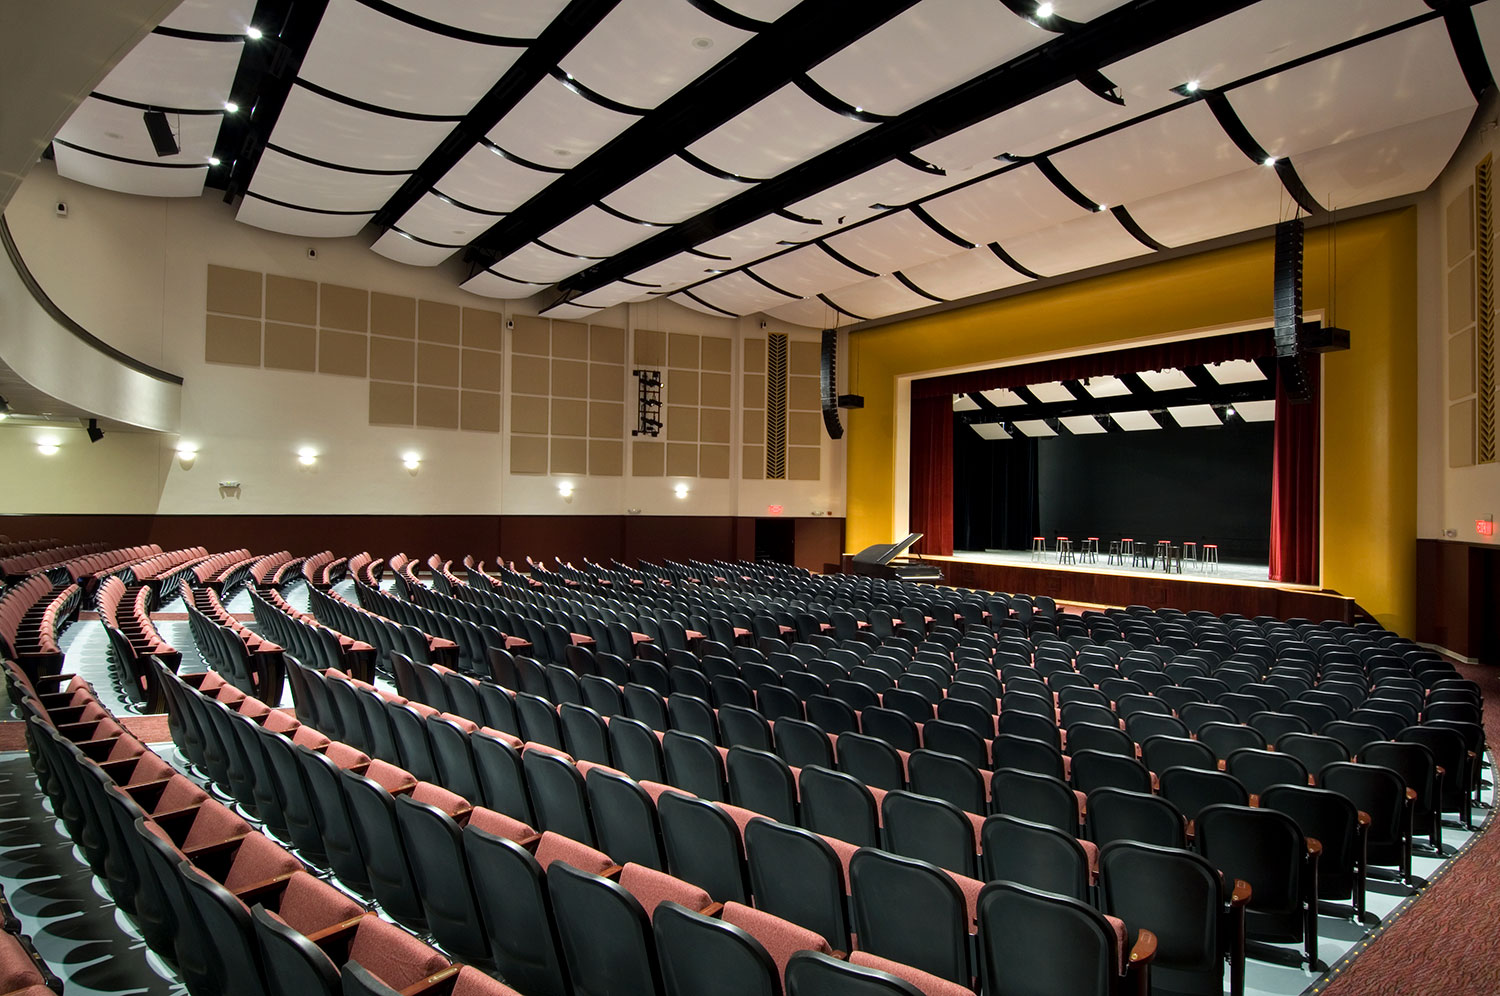 The visually stunning auditorium design delivers the finest listening experience with an electronic acoustical enhancement system and acoustical cloud ceiling system.